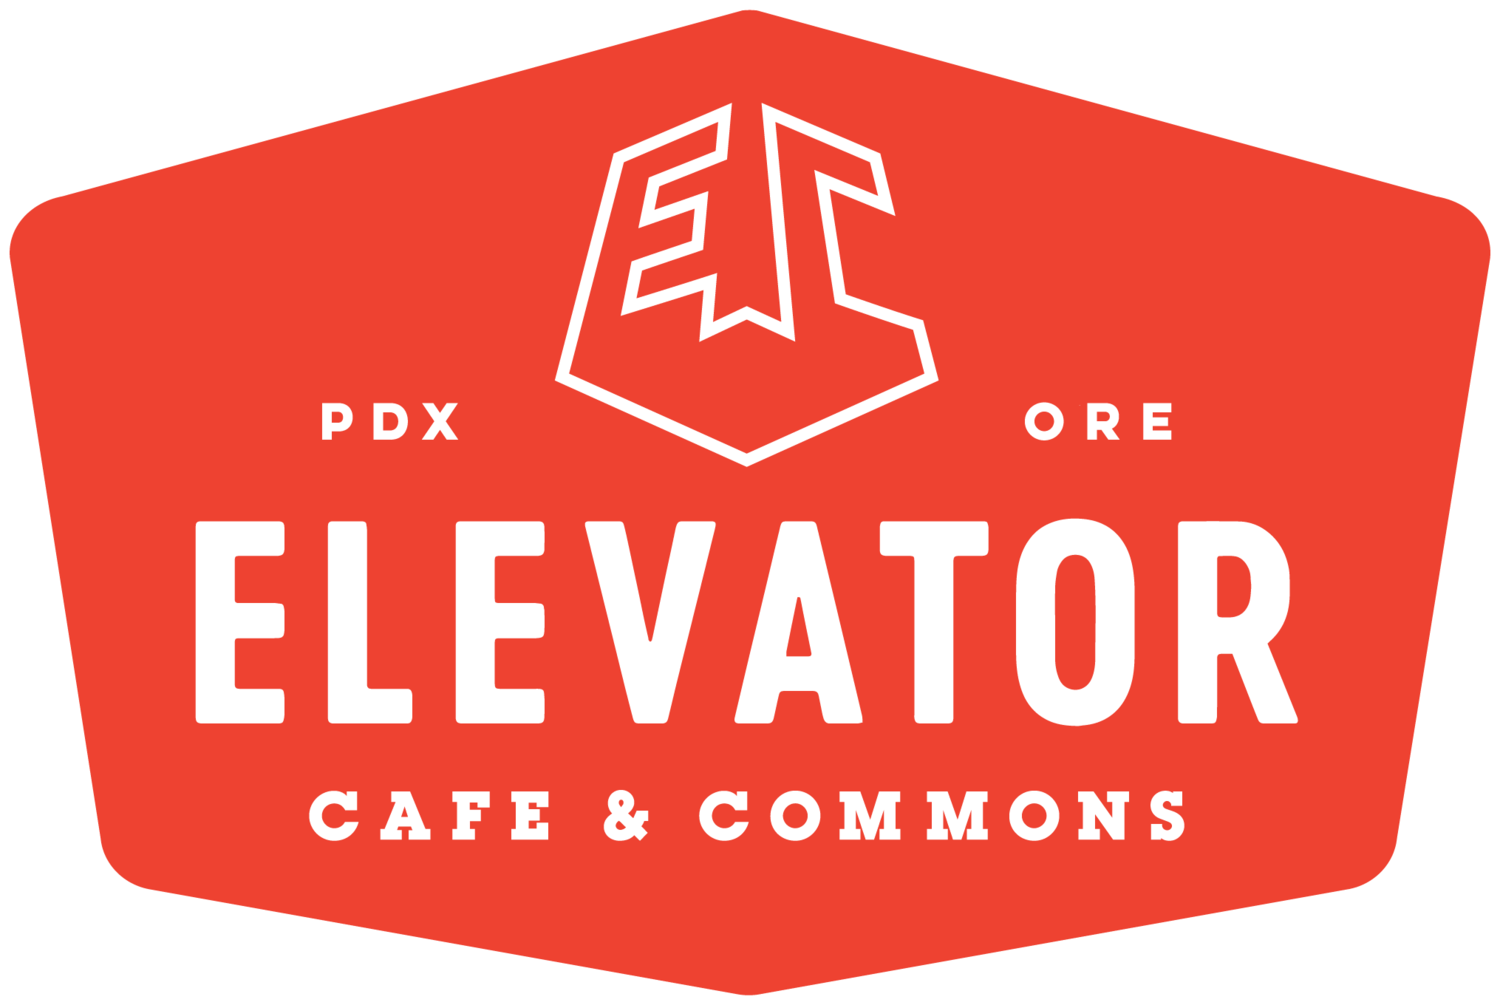 Elevator Cafe & Commons